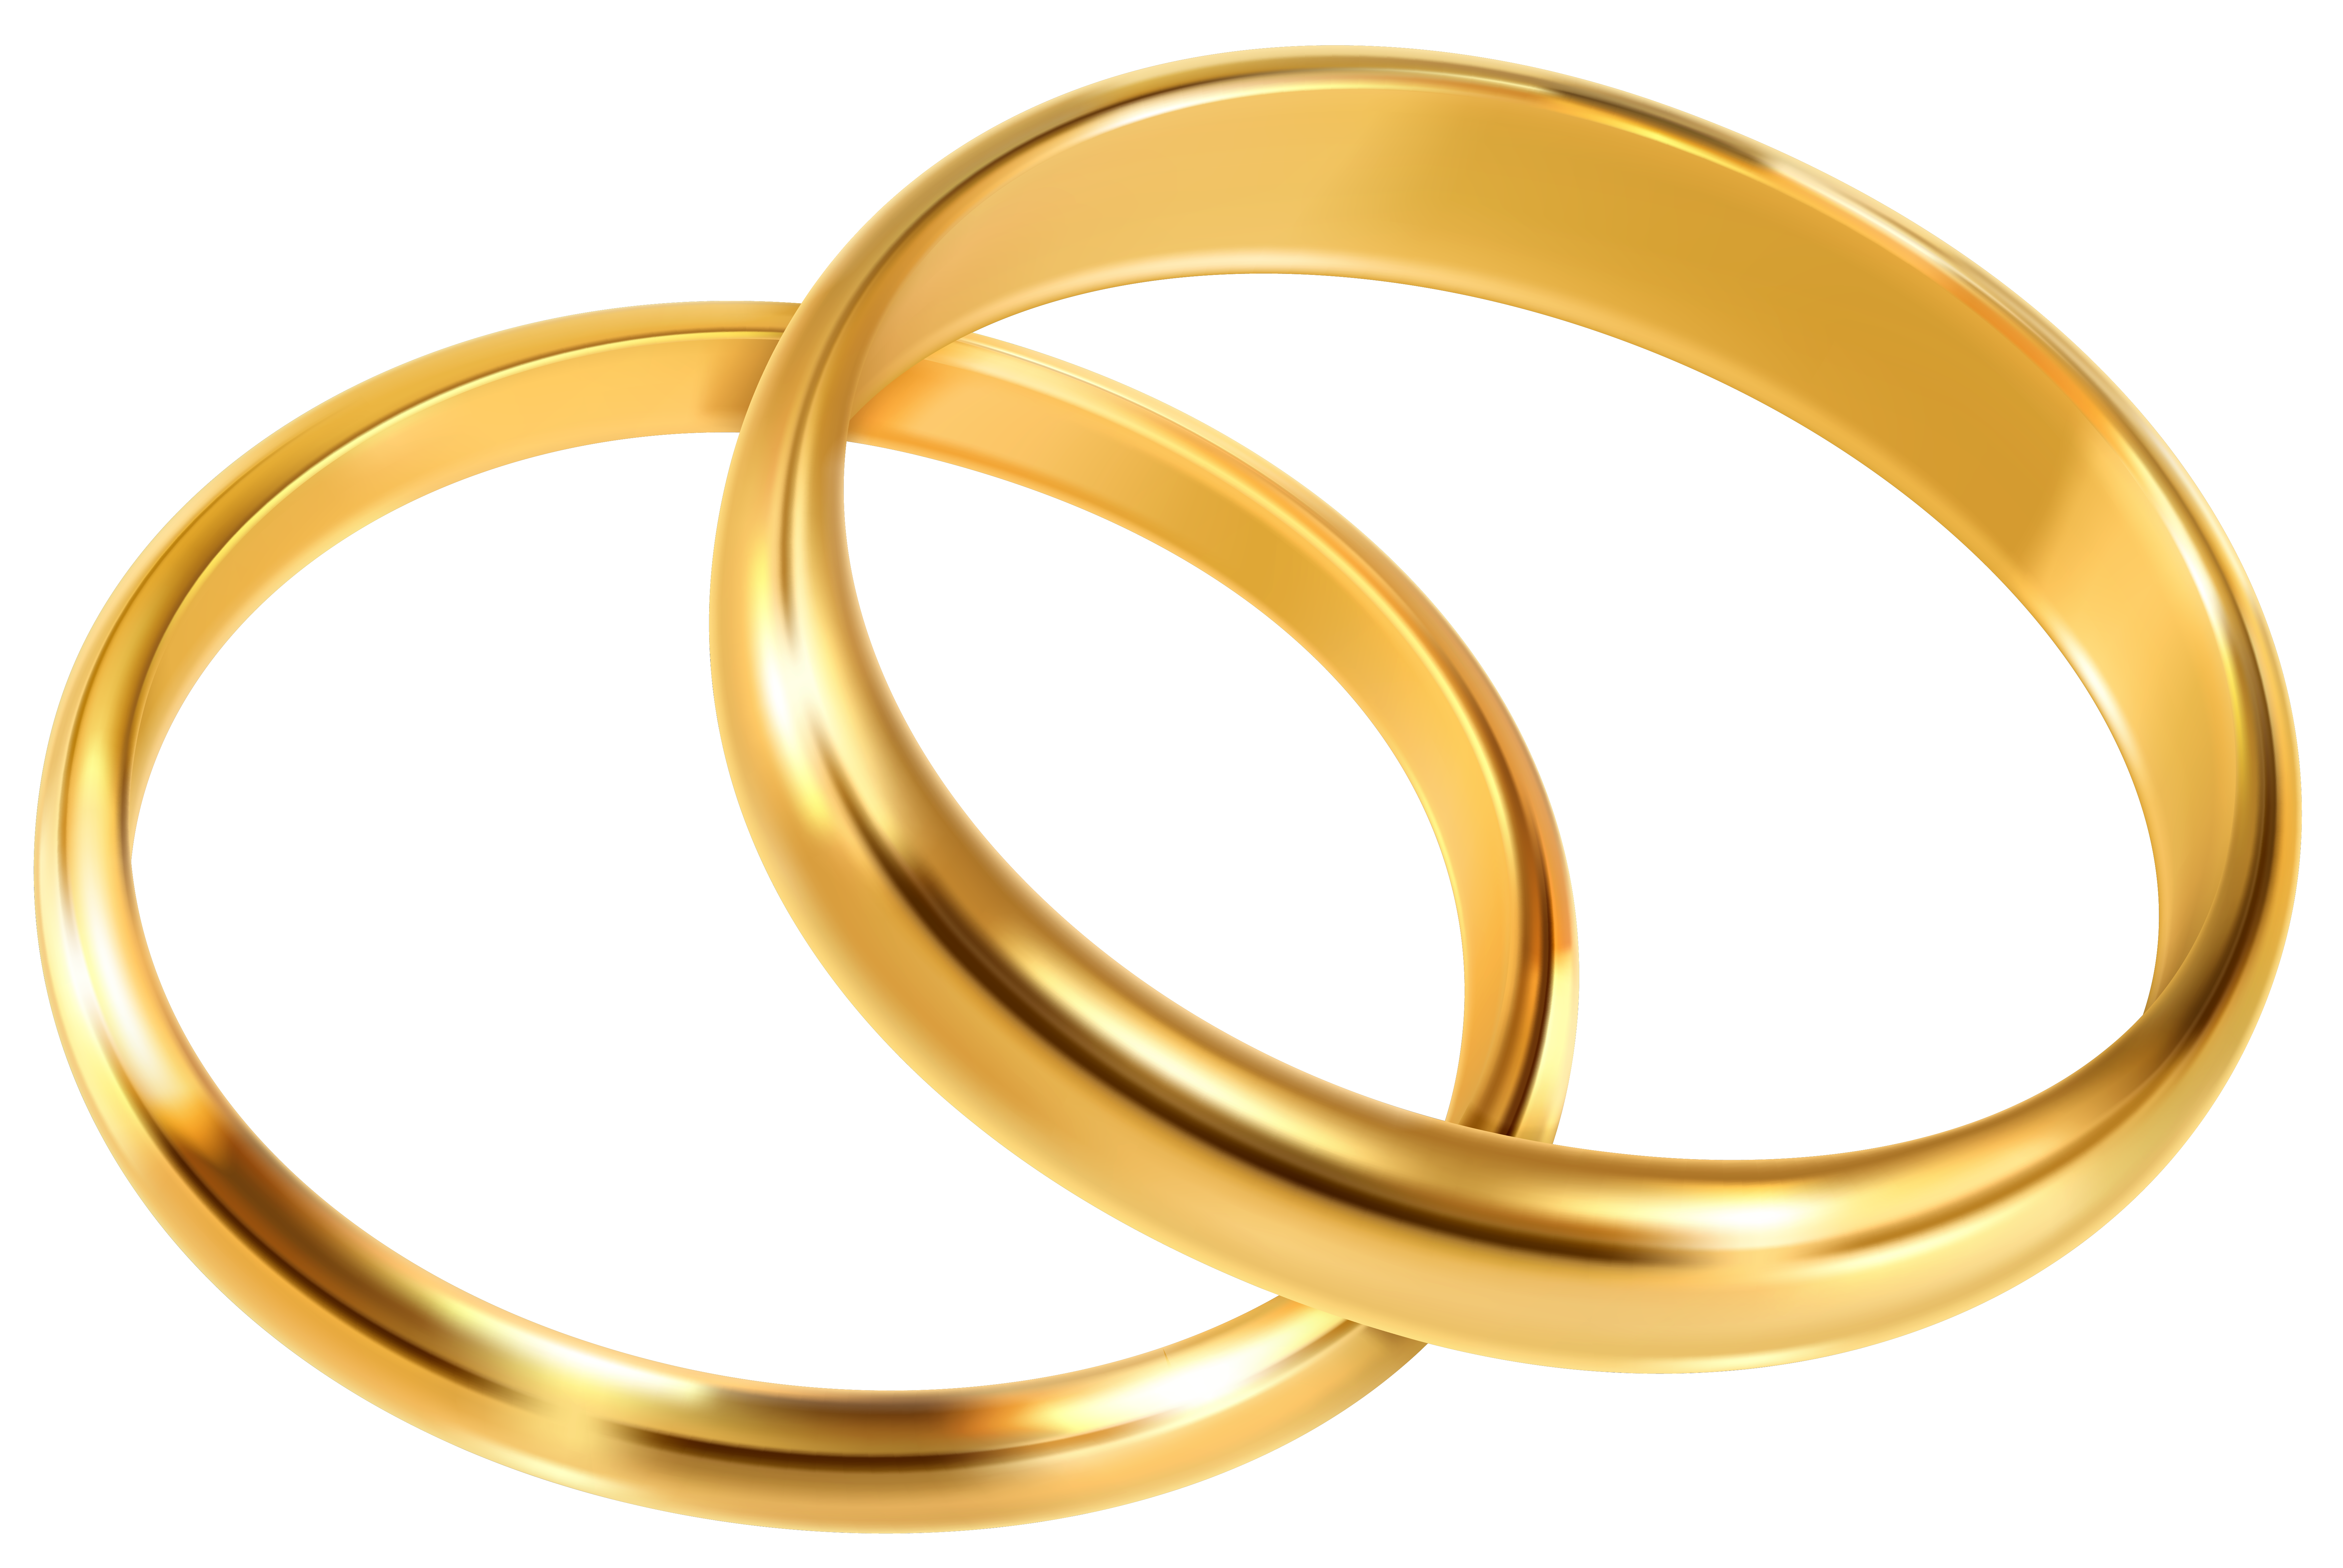 Ring clipart couple ring Cliparts Couple The Clipart Ring